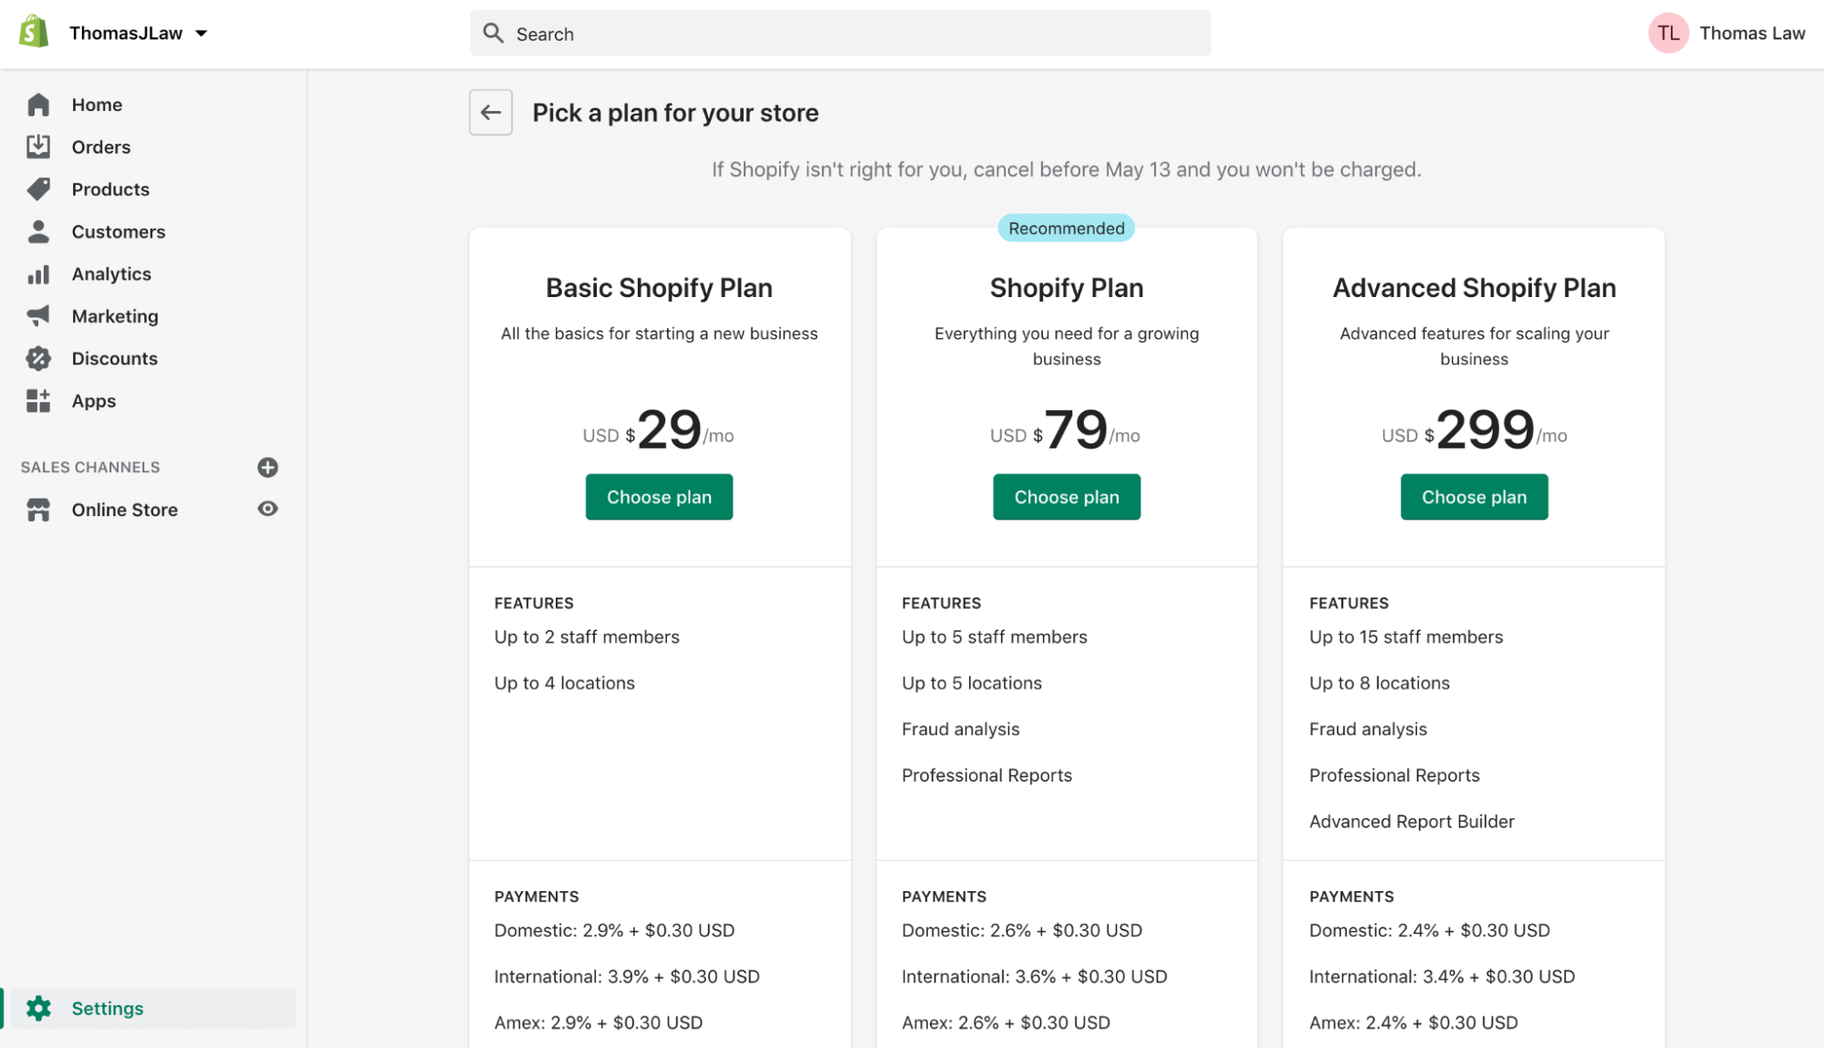 Learn Shopify: Pricing Plans